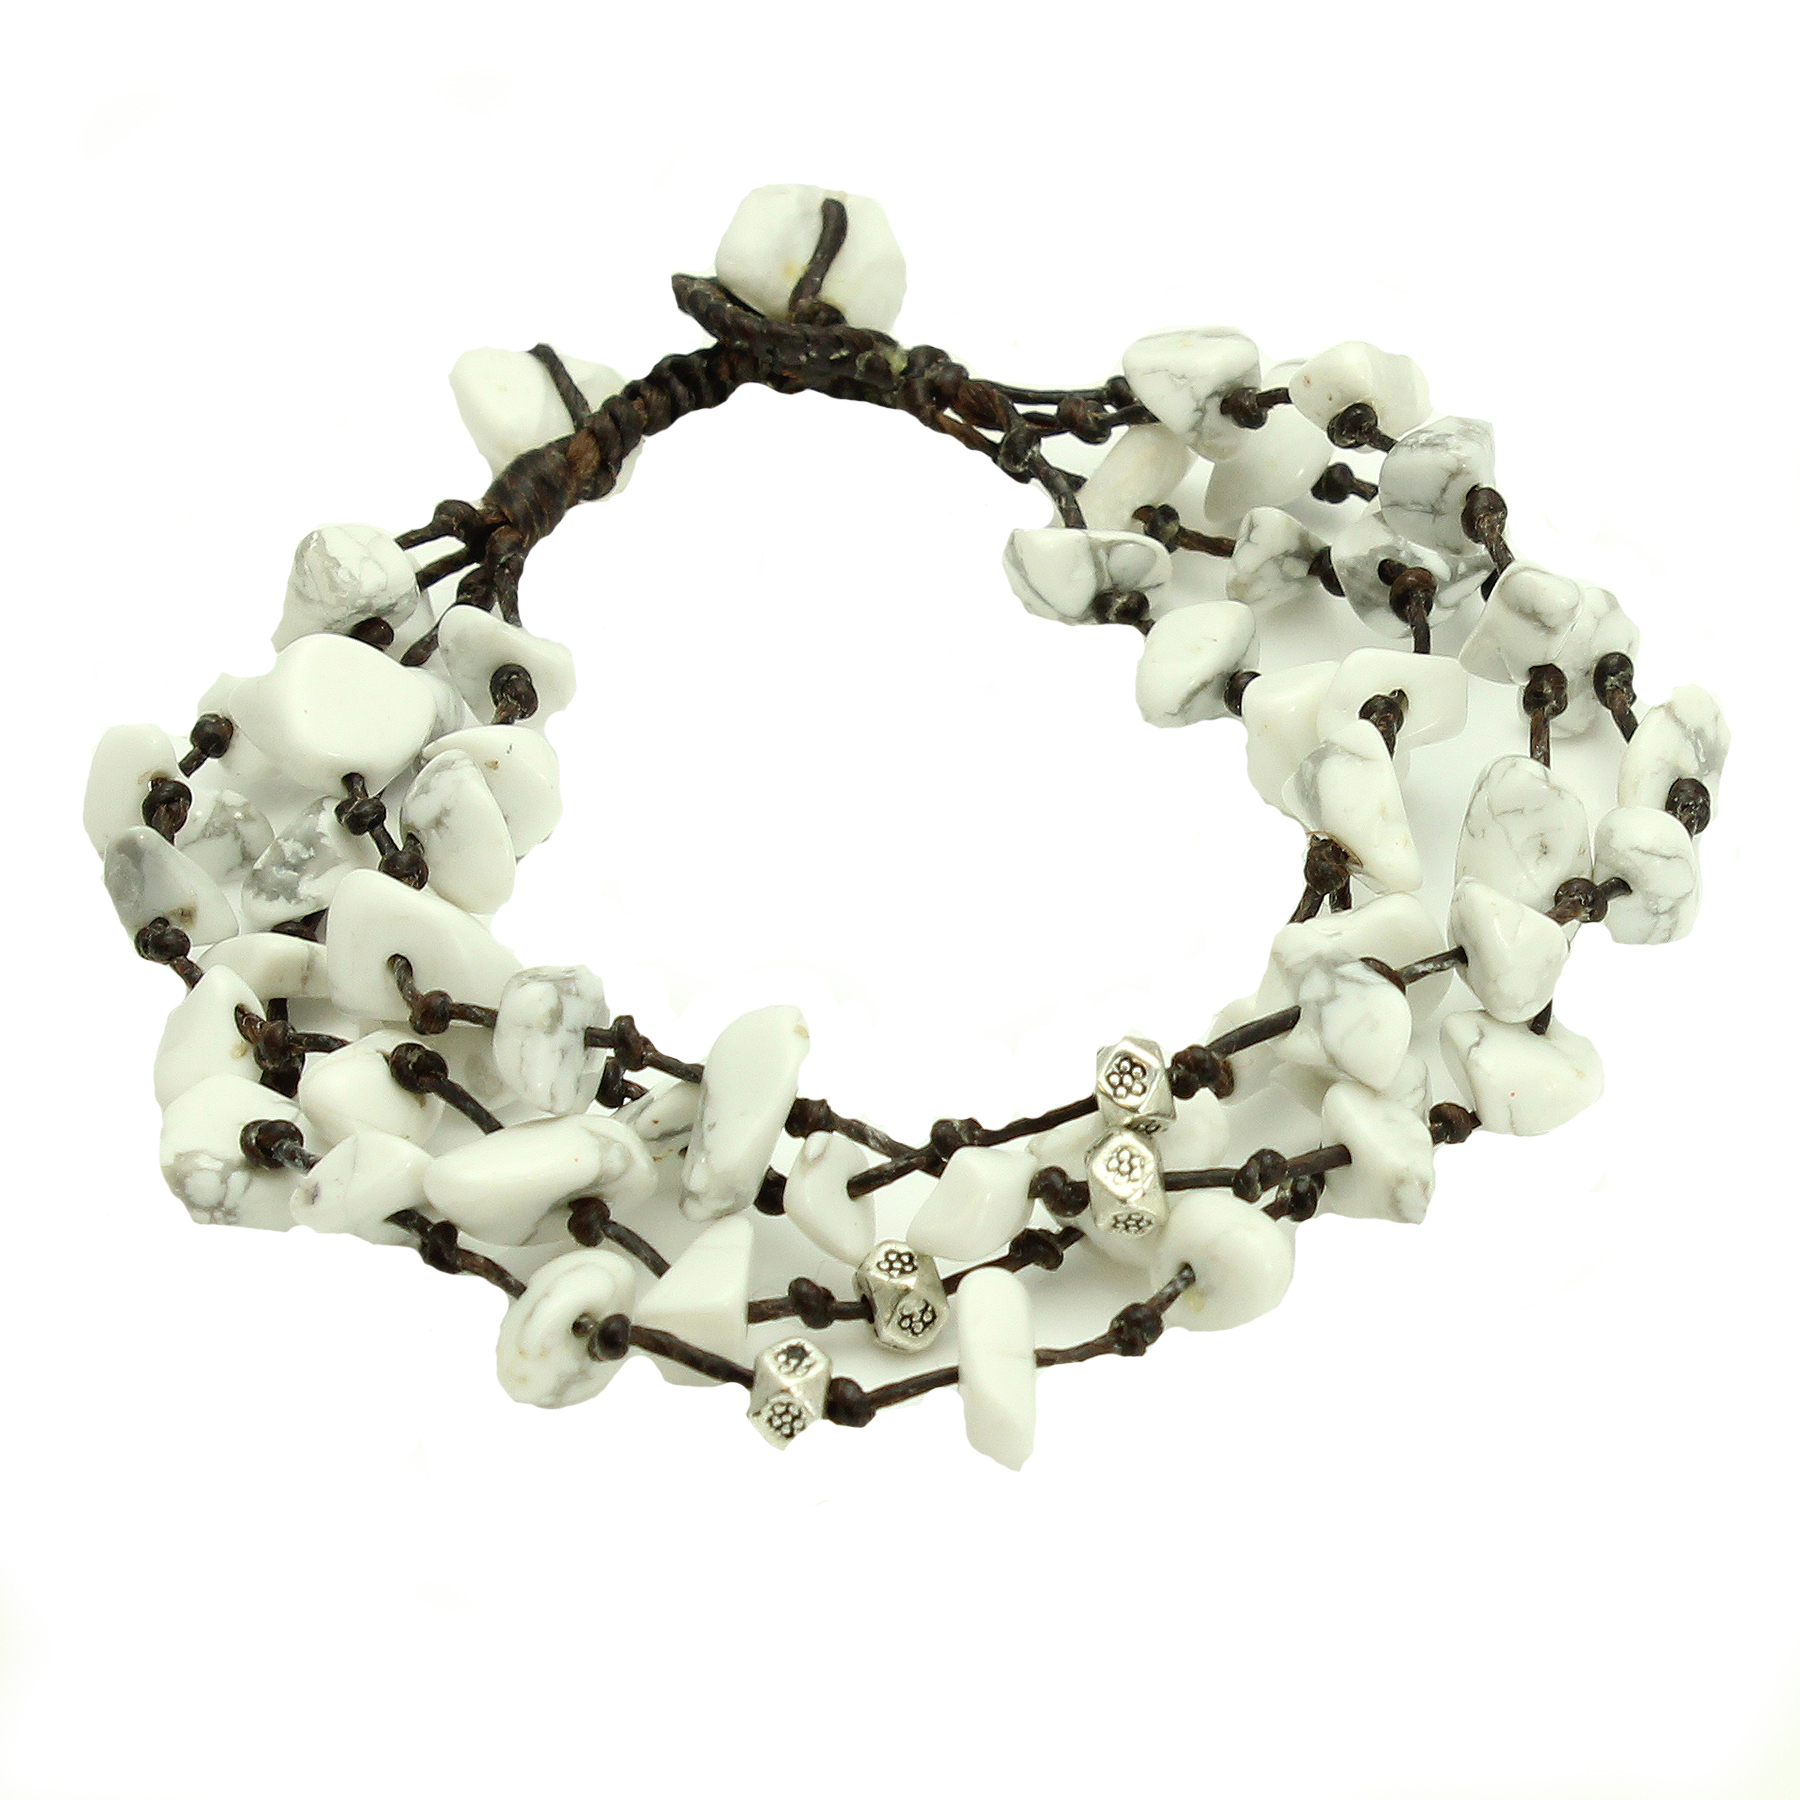 Adjustable Four Strand White Stone Bead Bracelet, Handmade Fair Trade